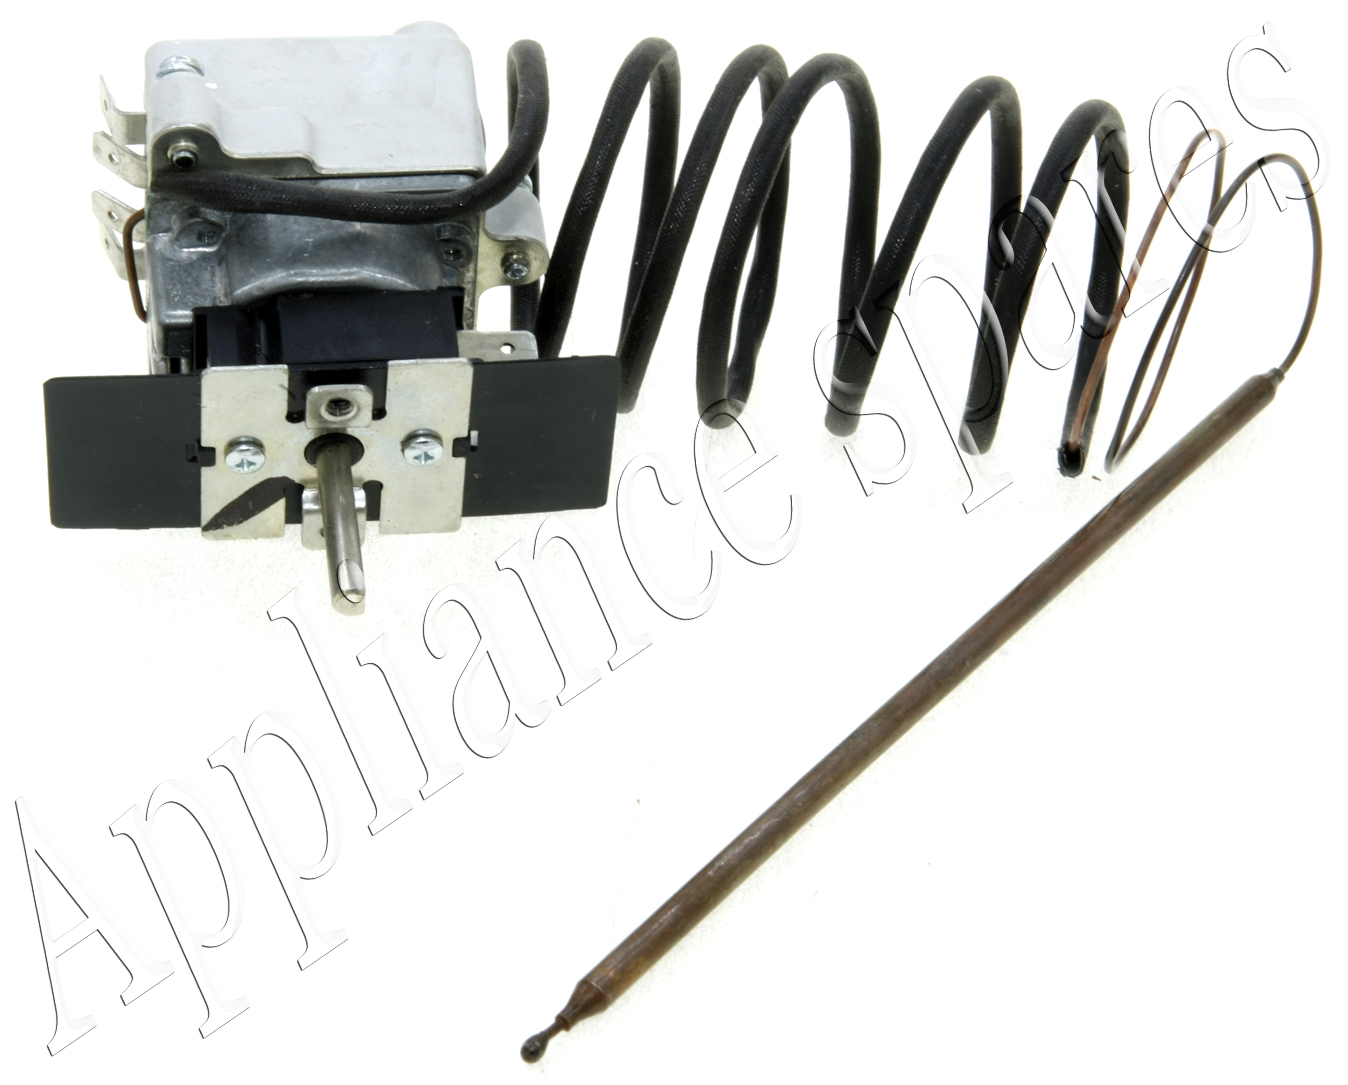 2339 thermostat 81th thick shaft 591067 lategan and van biljoens defy slimline 600s thermostat wiring diagram at panicattacktreatment.co